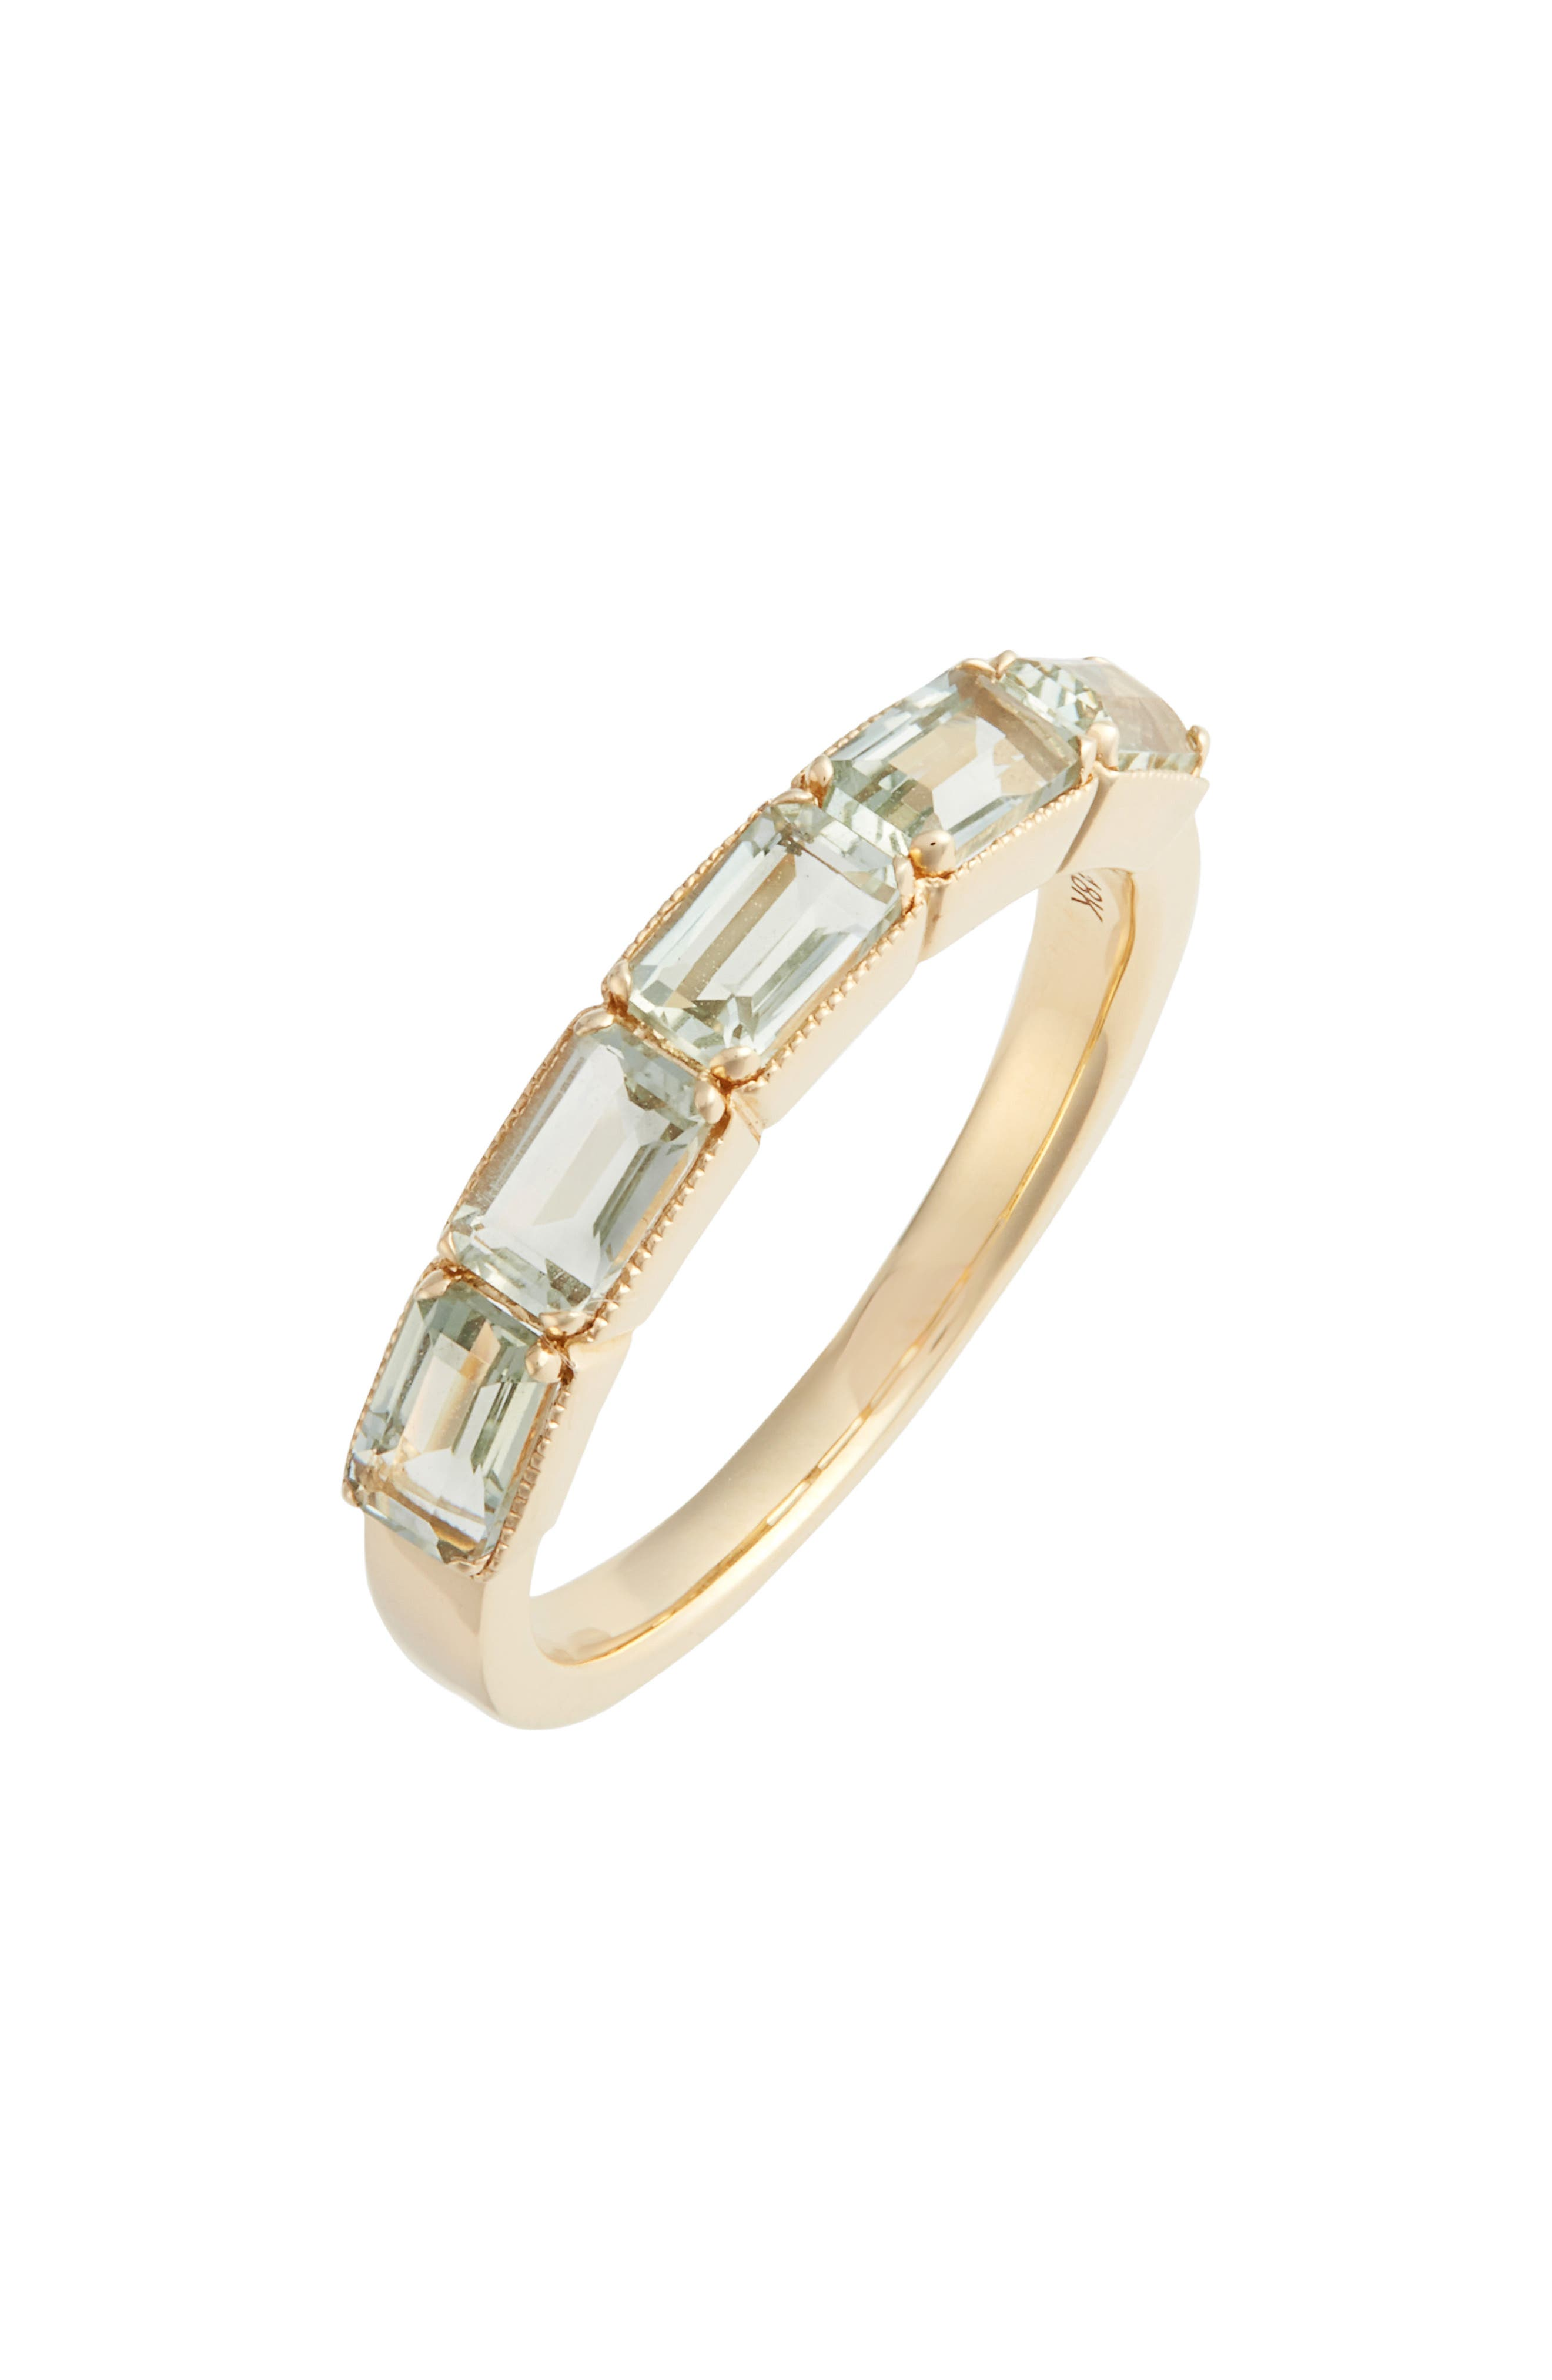 Green Amethyst Baguette Stack Ring,                             Main thumbnail 1, color,                             YELLOW GOLD/ GREEN AMETHYST